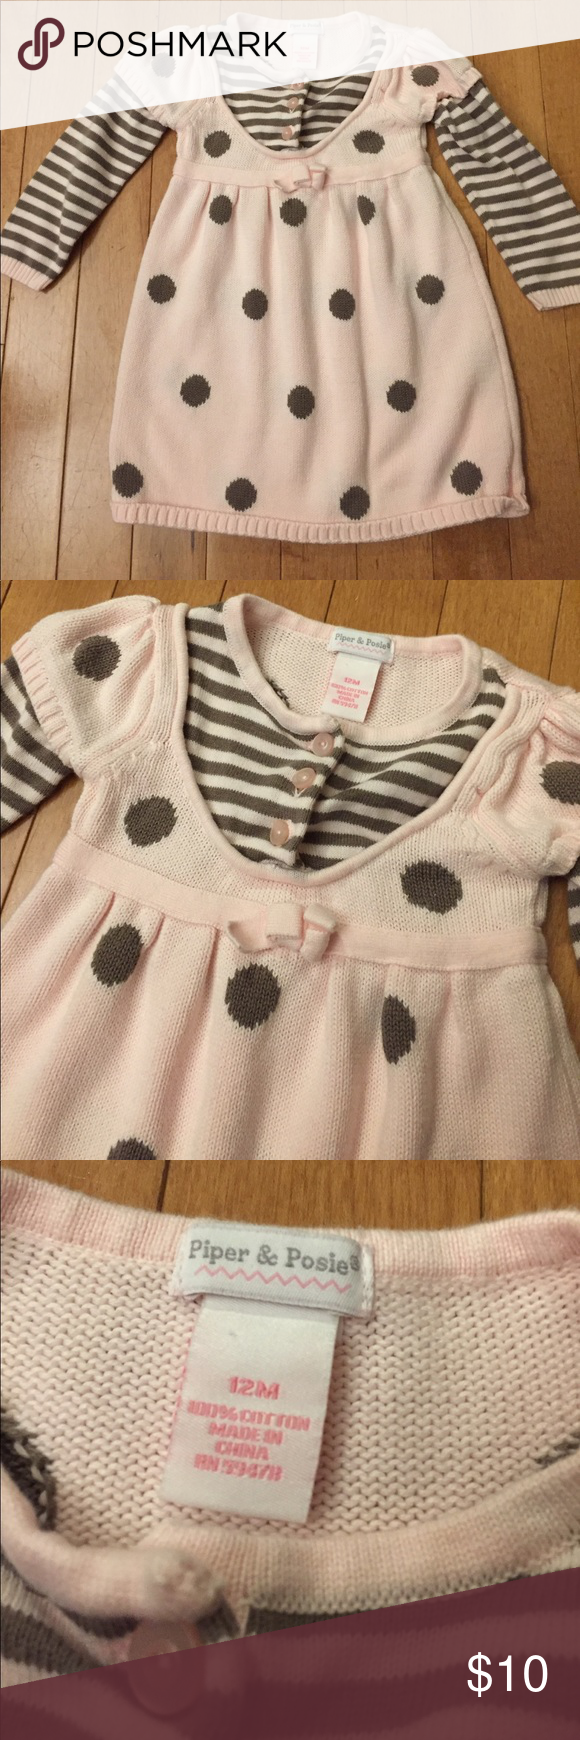 2a9e0be197d6 Piper   Posie 12 Month Pink Sweater Dress Excellent Condition! Size ...